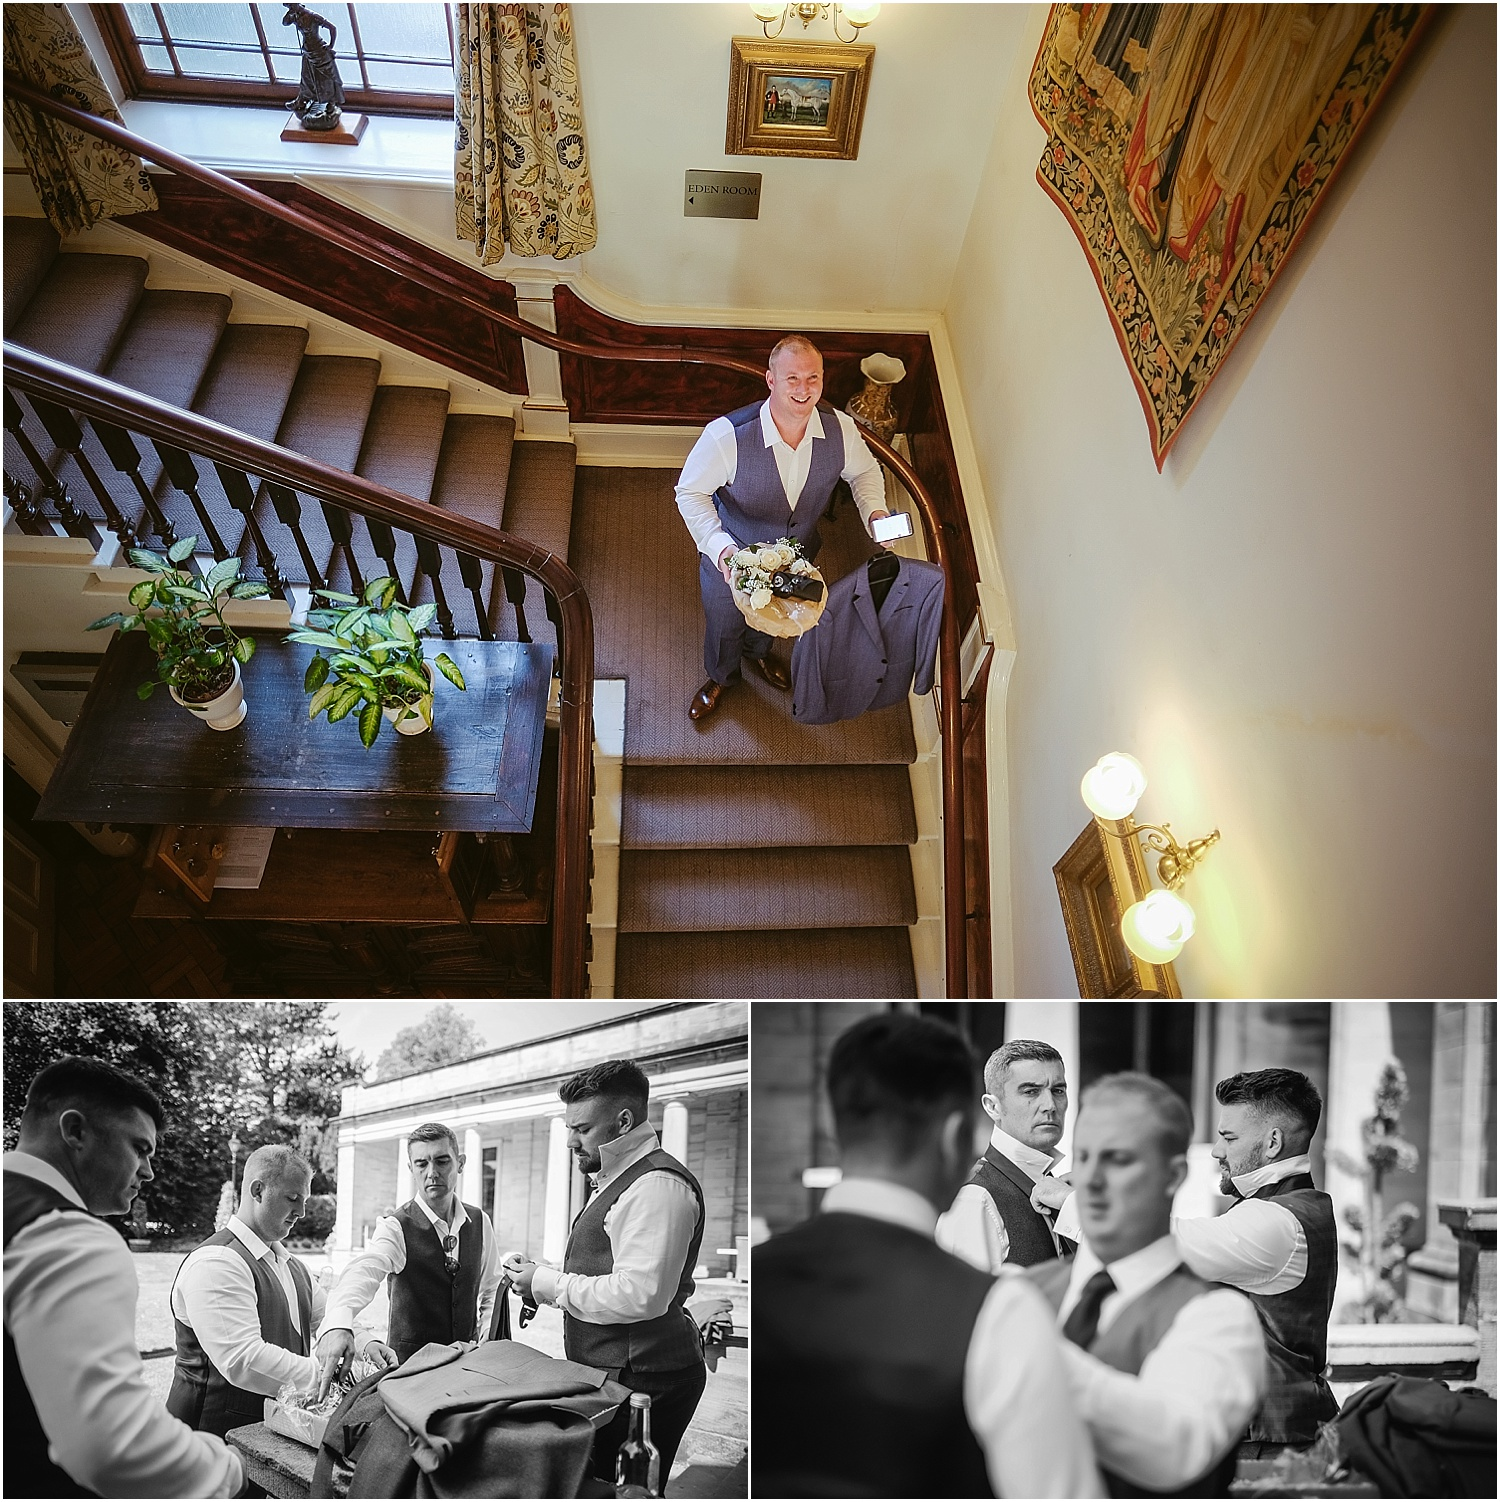 Wedding at Beamish Hall - wedding photography by www.2tonephotography.co.uk 128.jpg